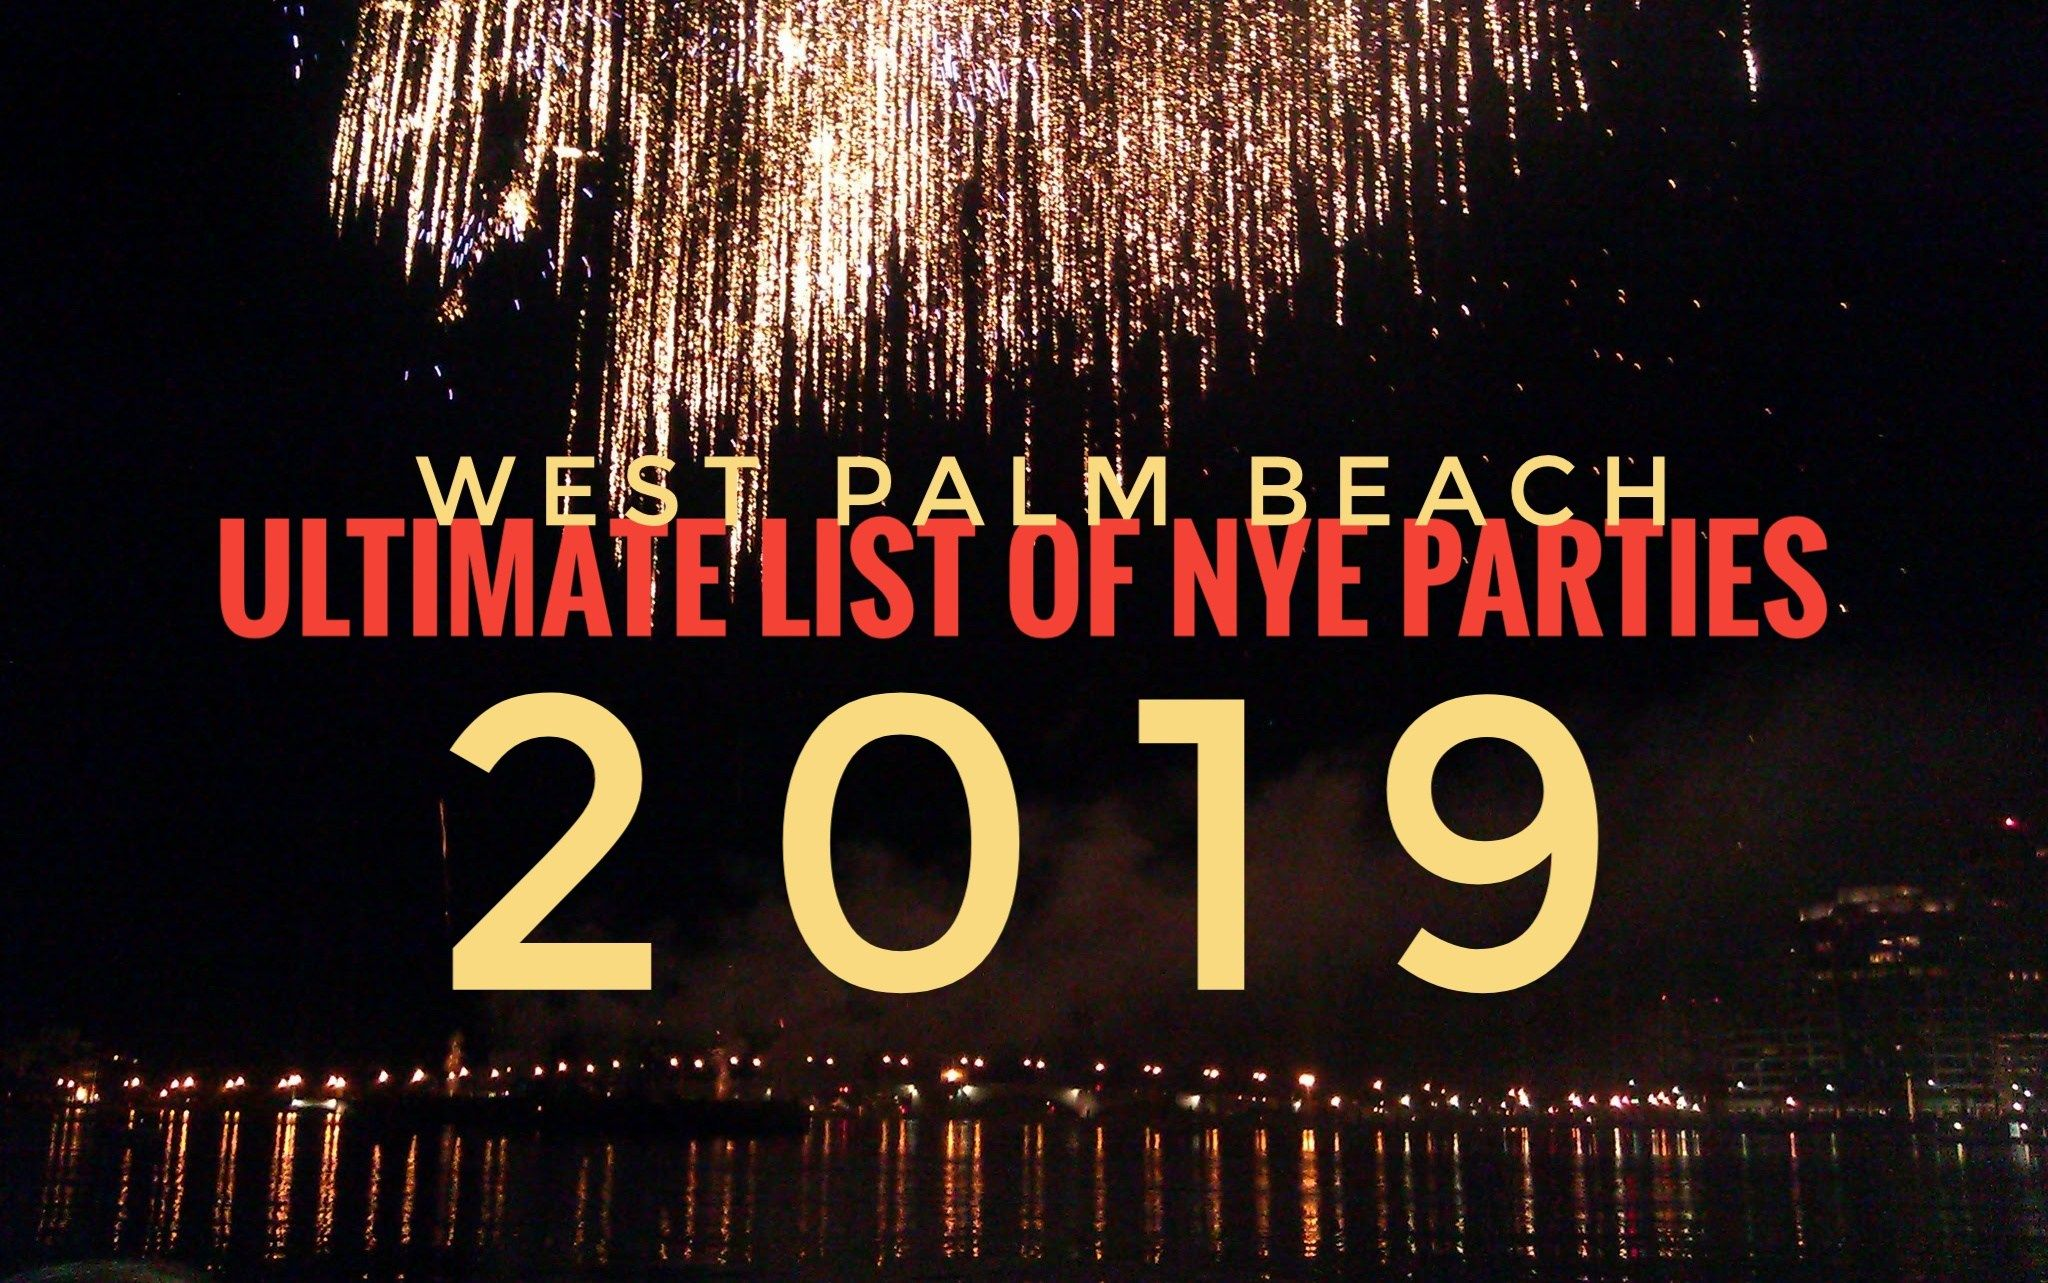 New Year's Eve 2019 Parties in West Palm Beach | New year's eve 2019, West palm beach, West palm